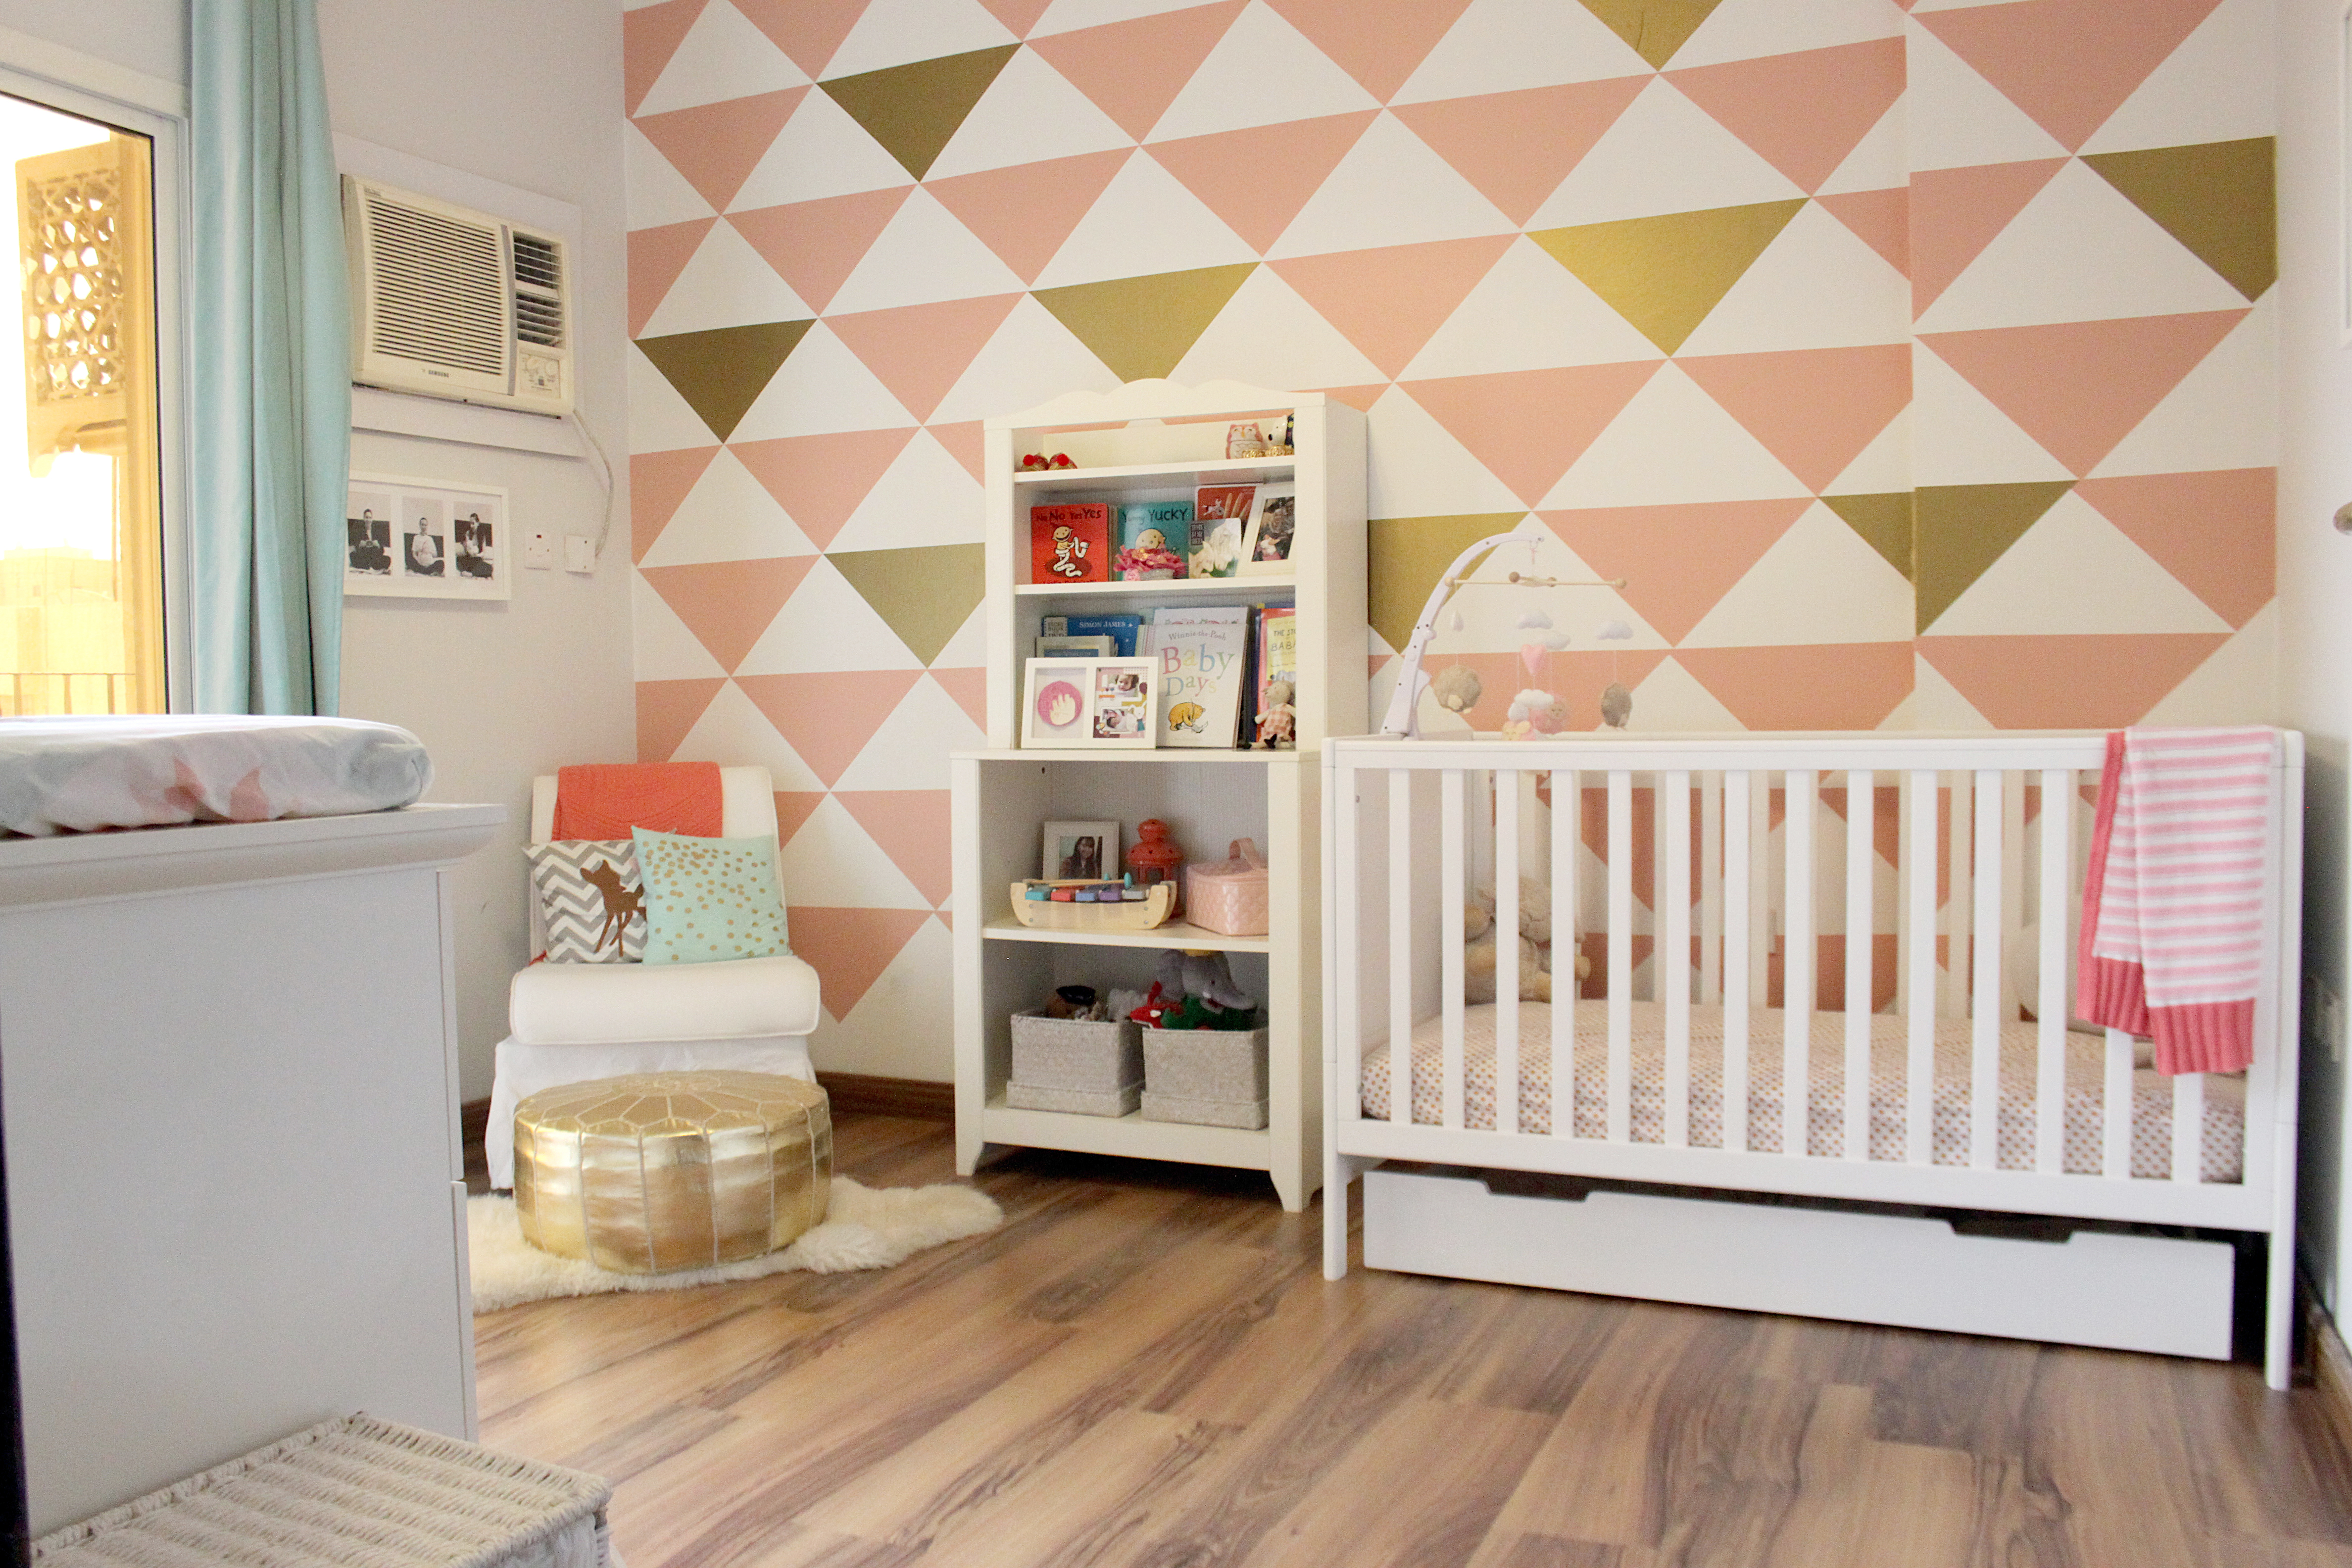 Peach and Mint Nursery with Triangle Decal Accent Wall